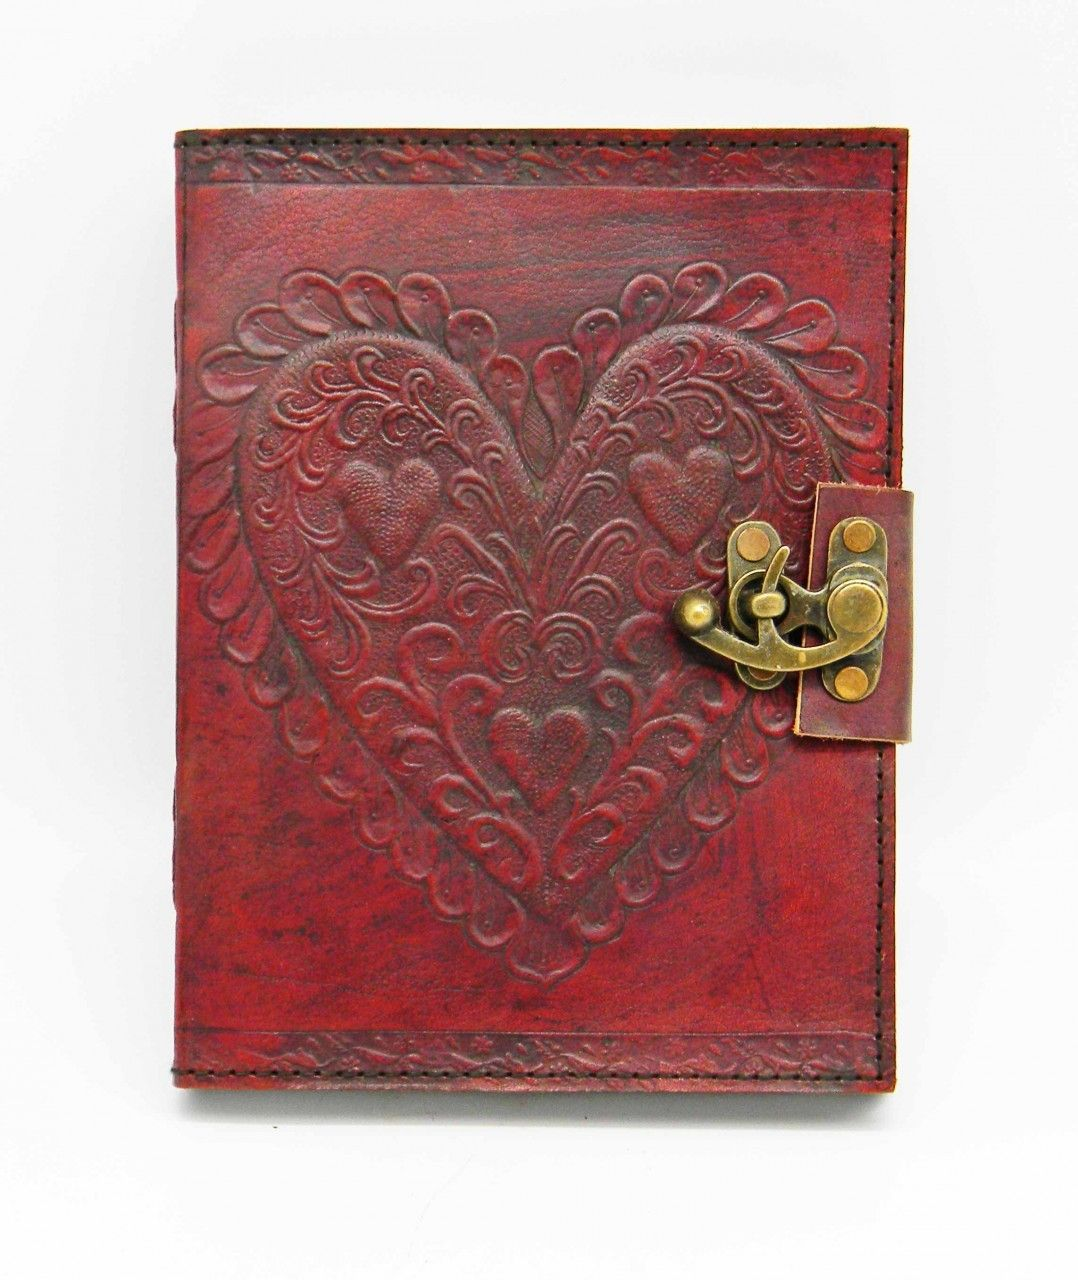 Heart journal image by Robin Wilkins on Hearts on Display